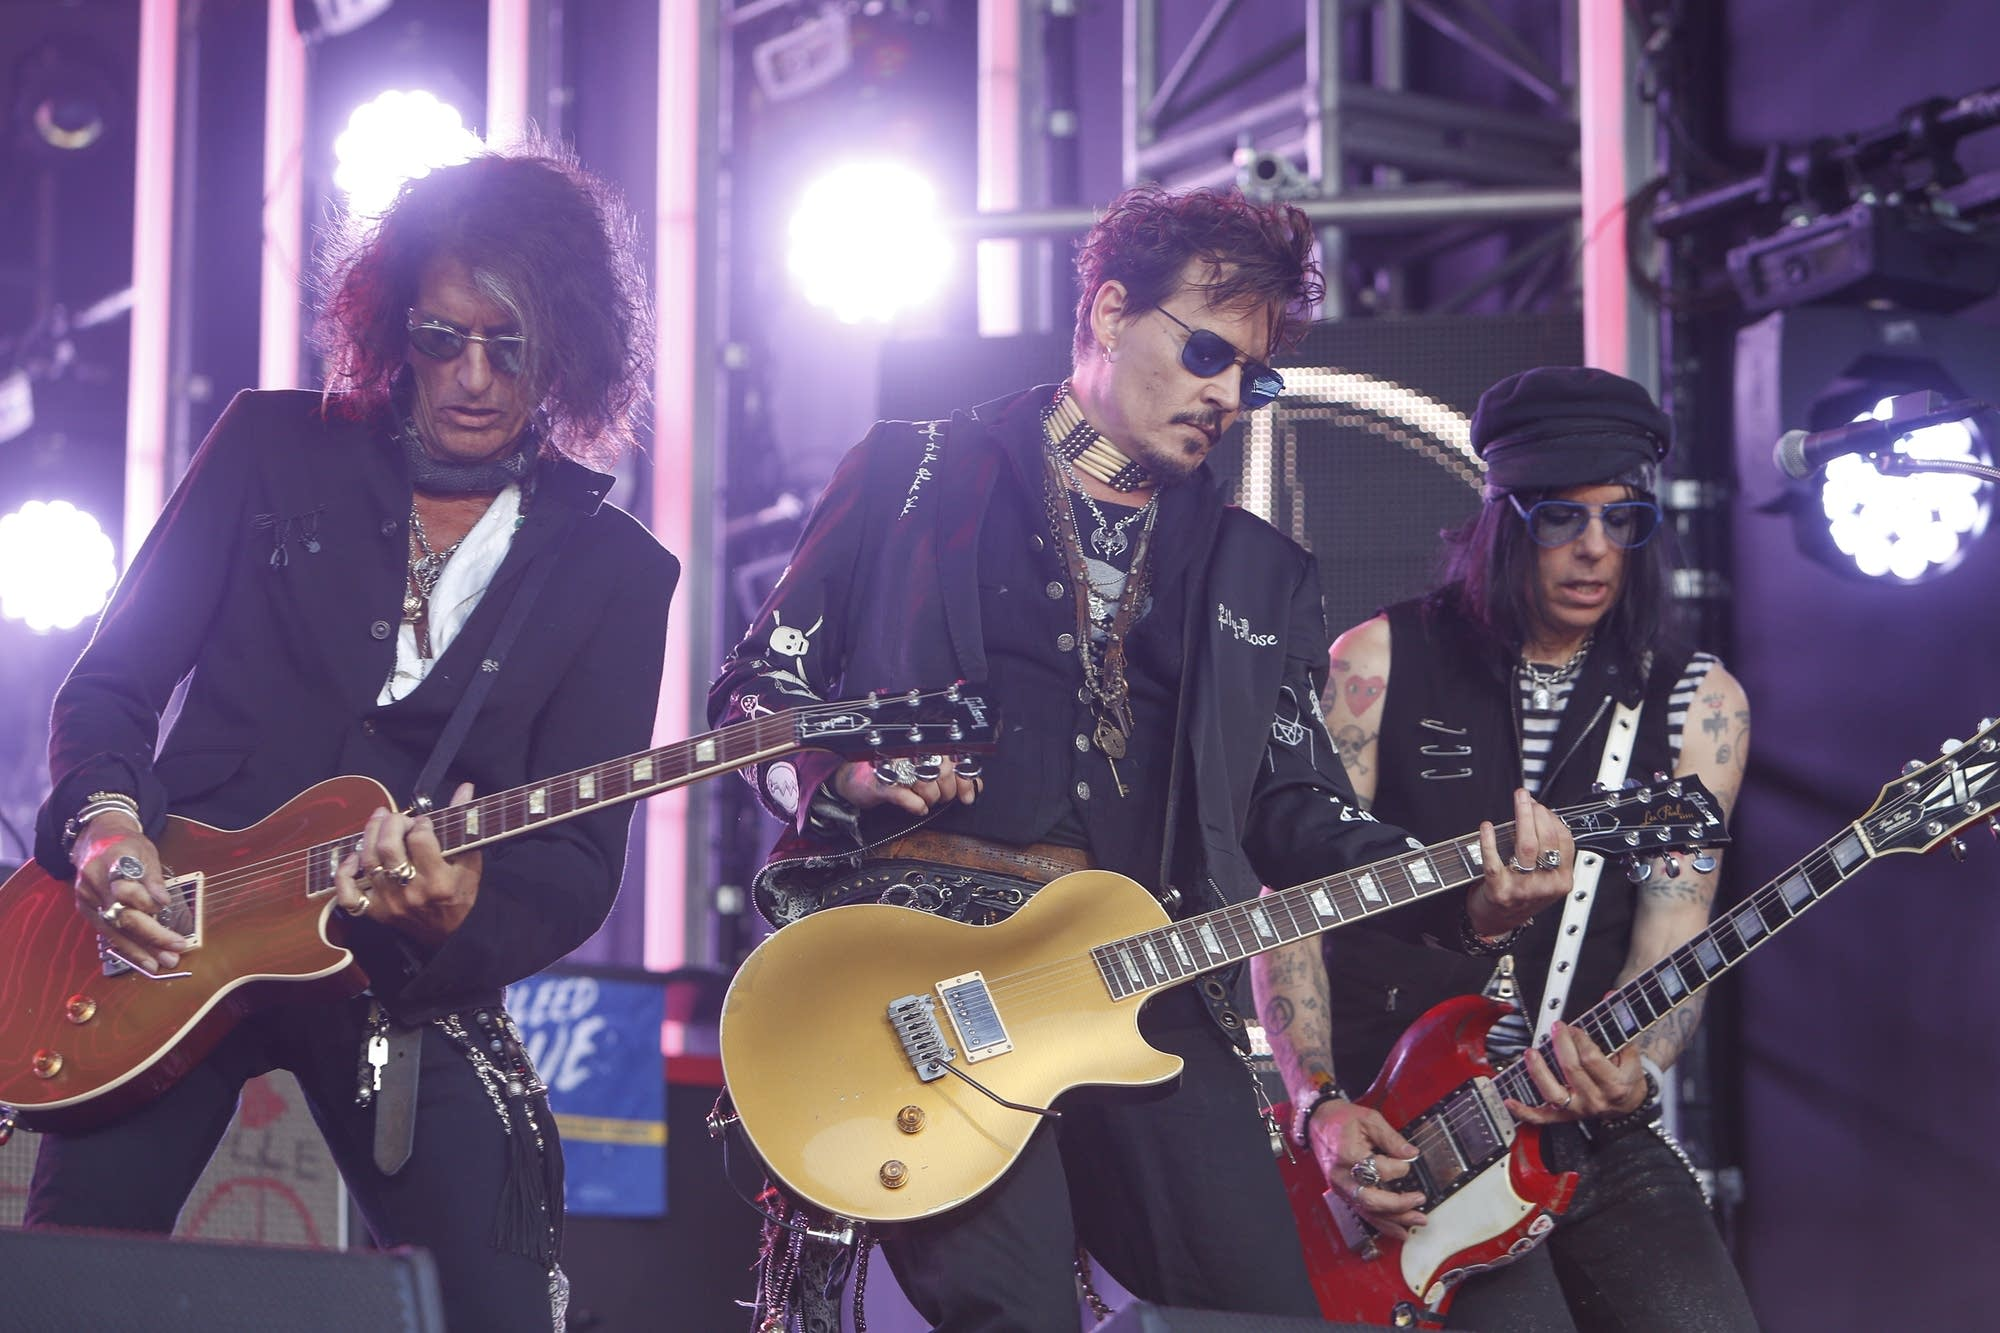 Hollywood Vampires on 'Jimmy Kimmel Live!'